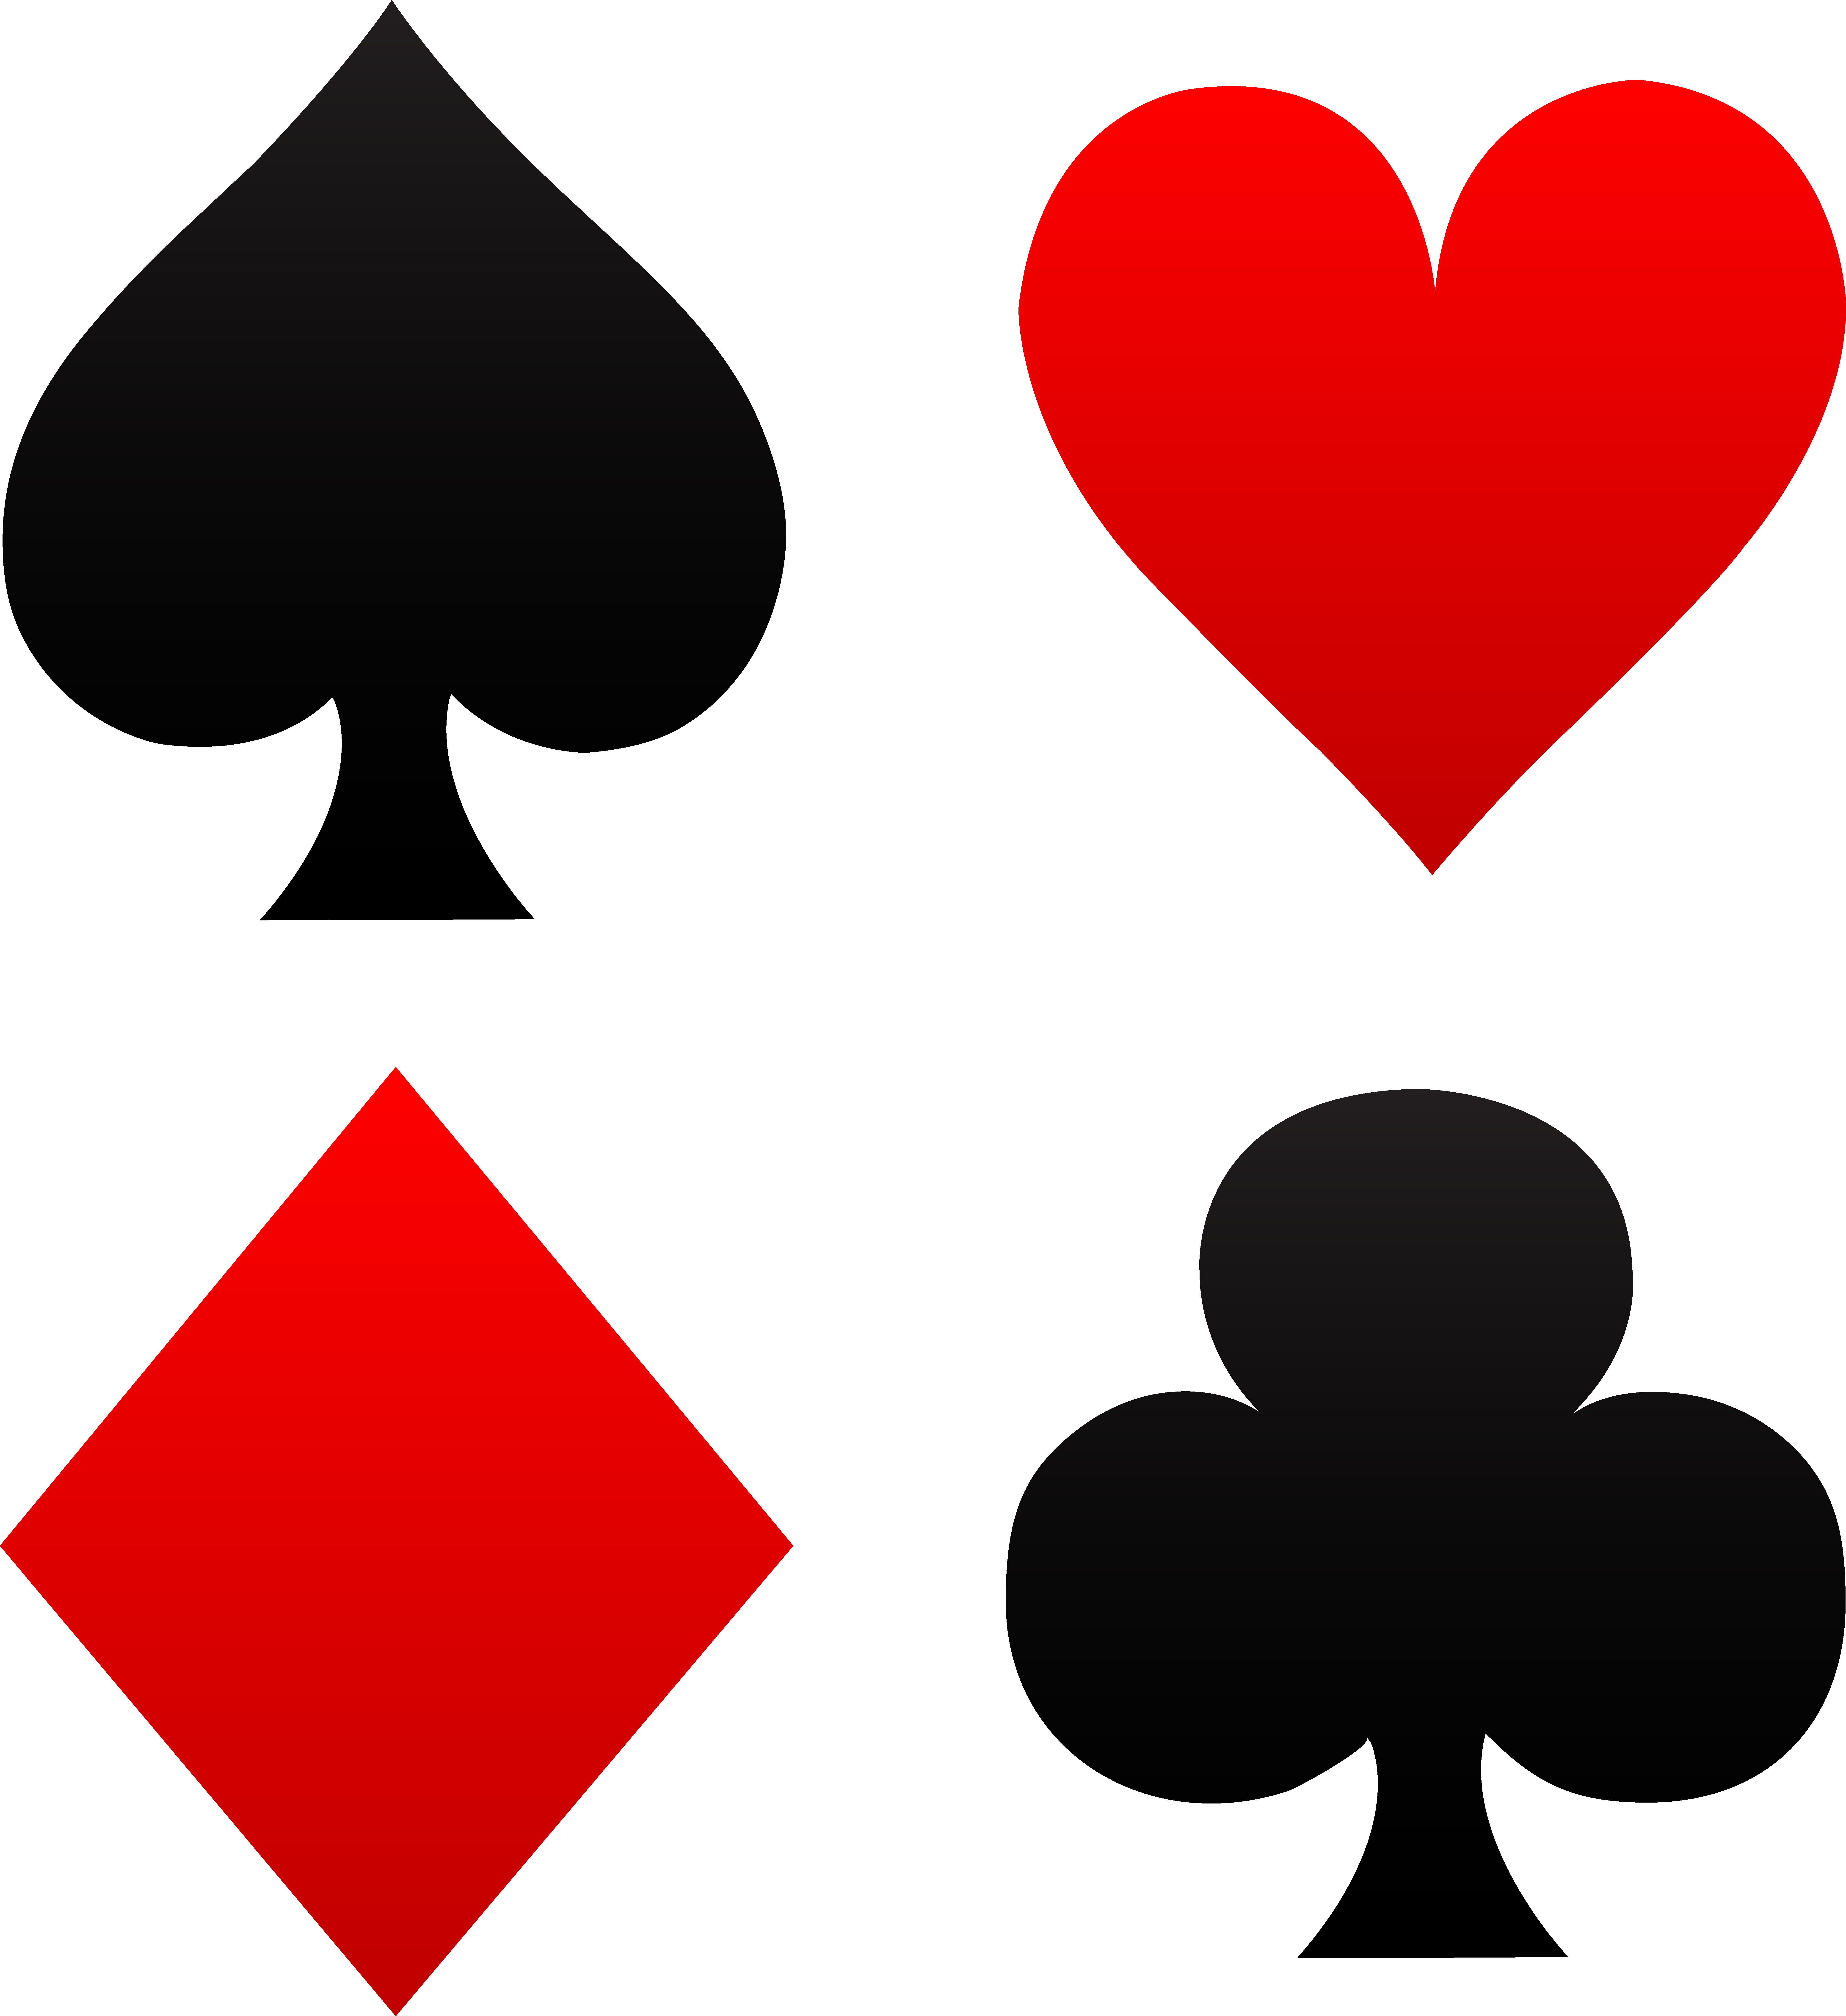 Casino clipart deck card. Playing symbols all things